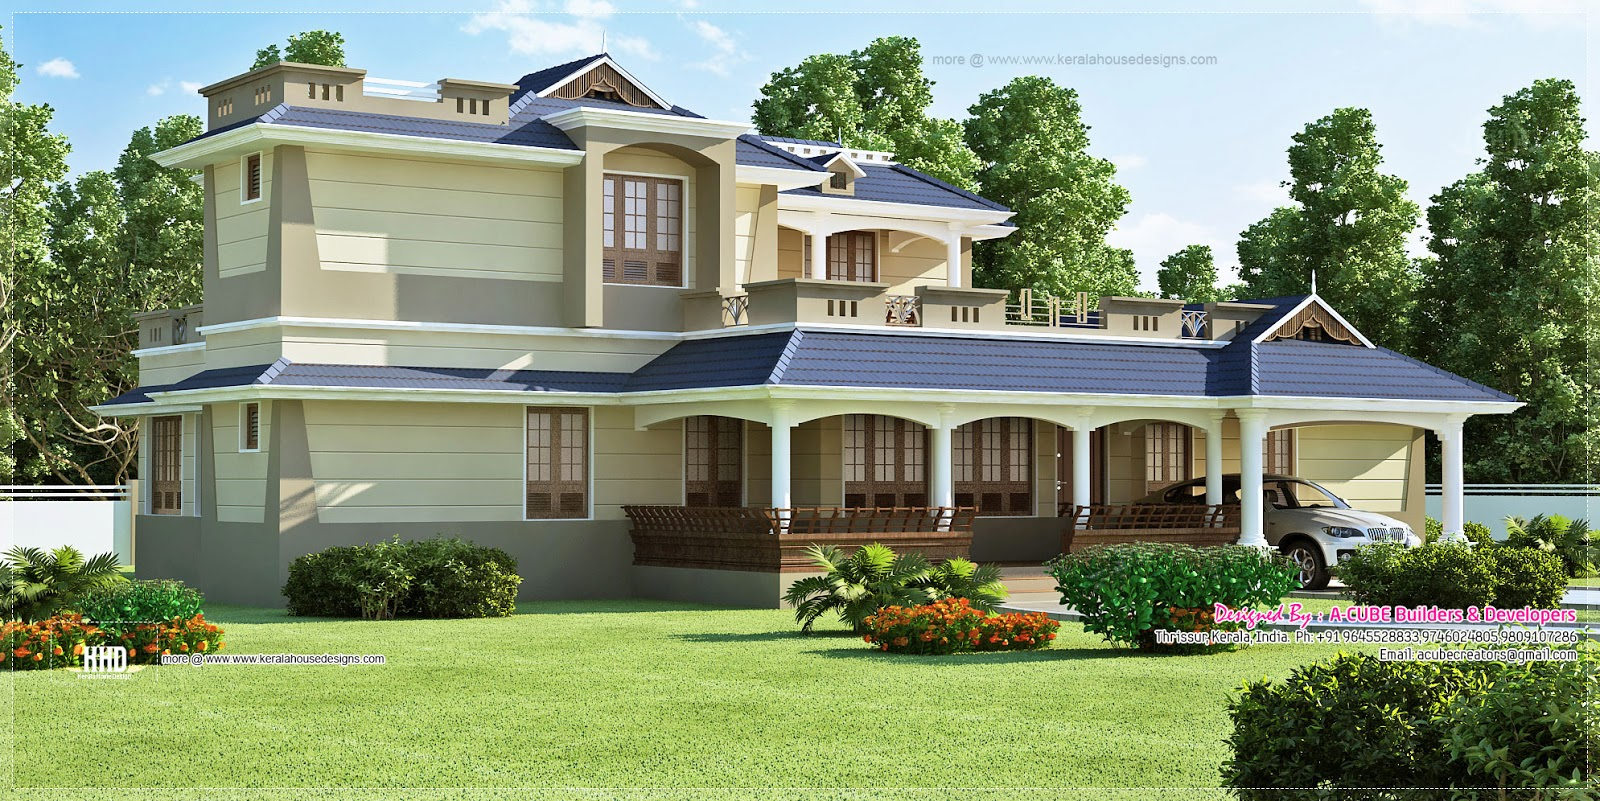 Luxury sloping roof 5 bedroom villa exterior home kerala for Small villa plans in kerala